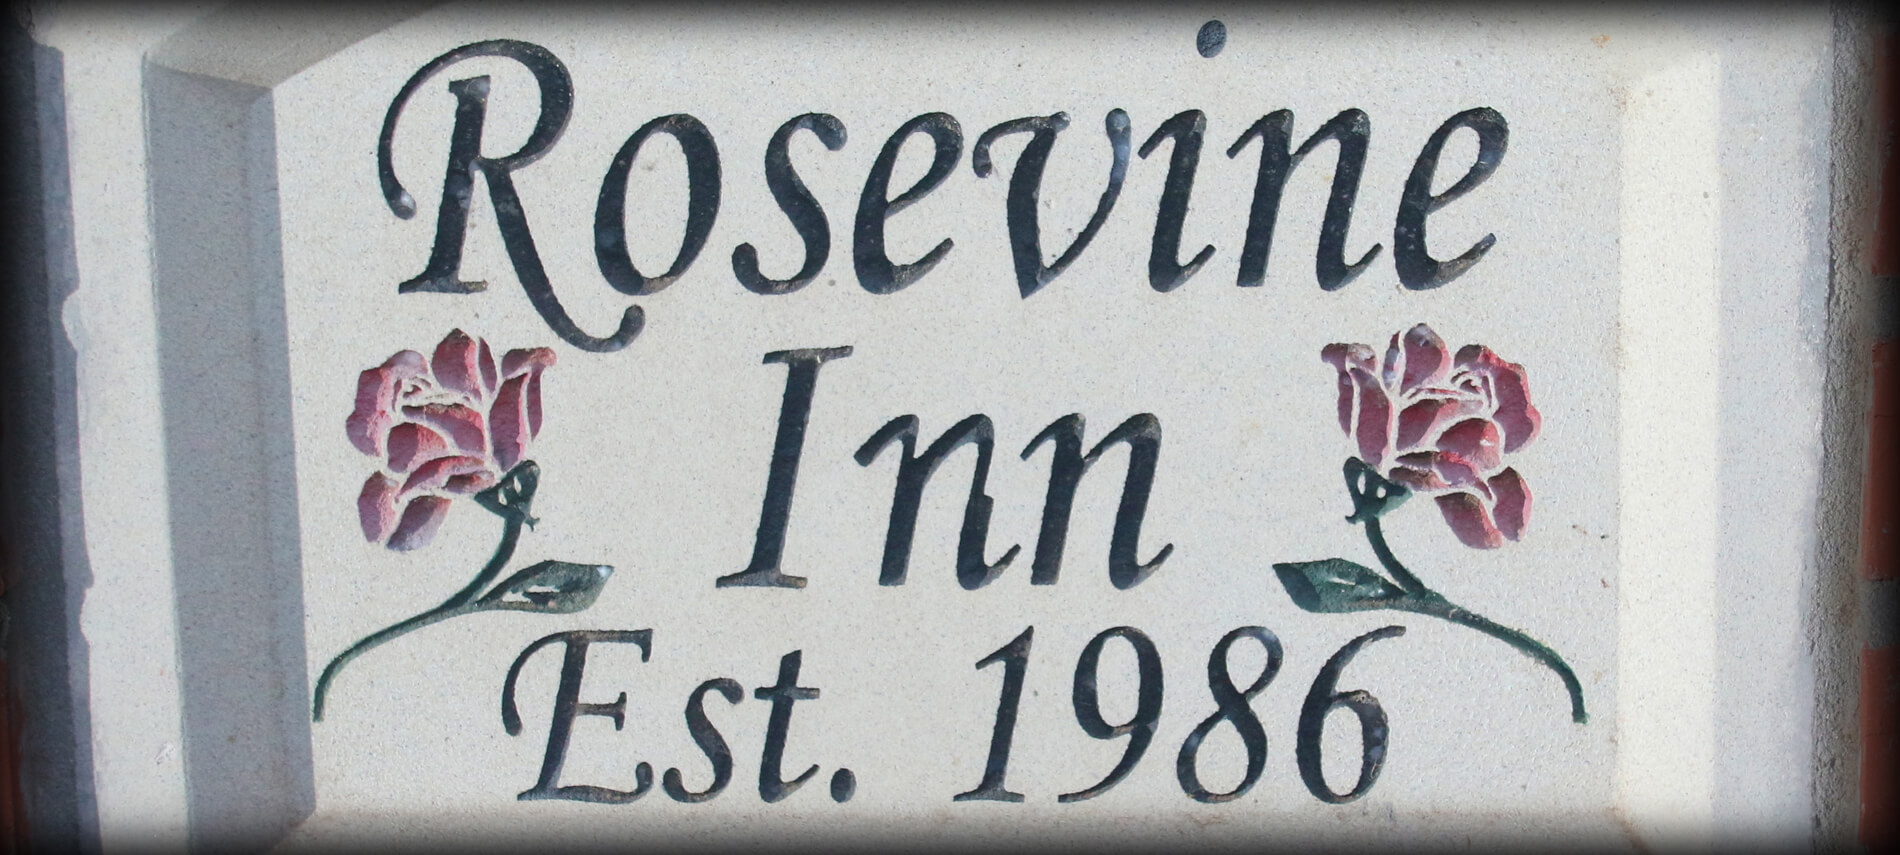 Rosevine Inn Creme Plaque that says Rosevine Inn established 1986 with 2 red roses etched on either side